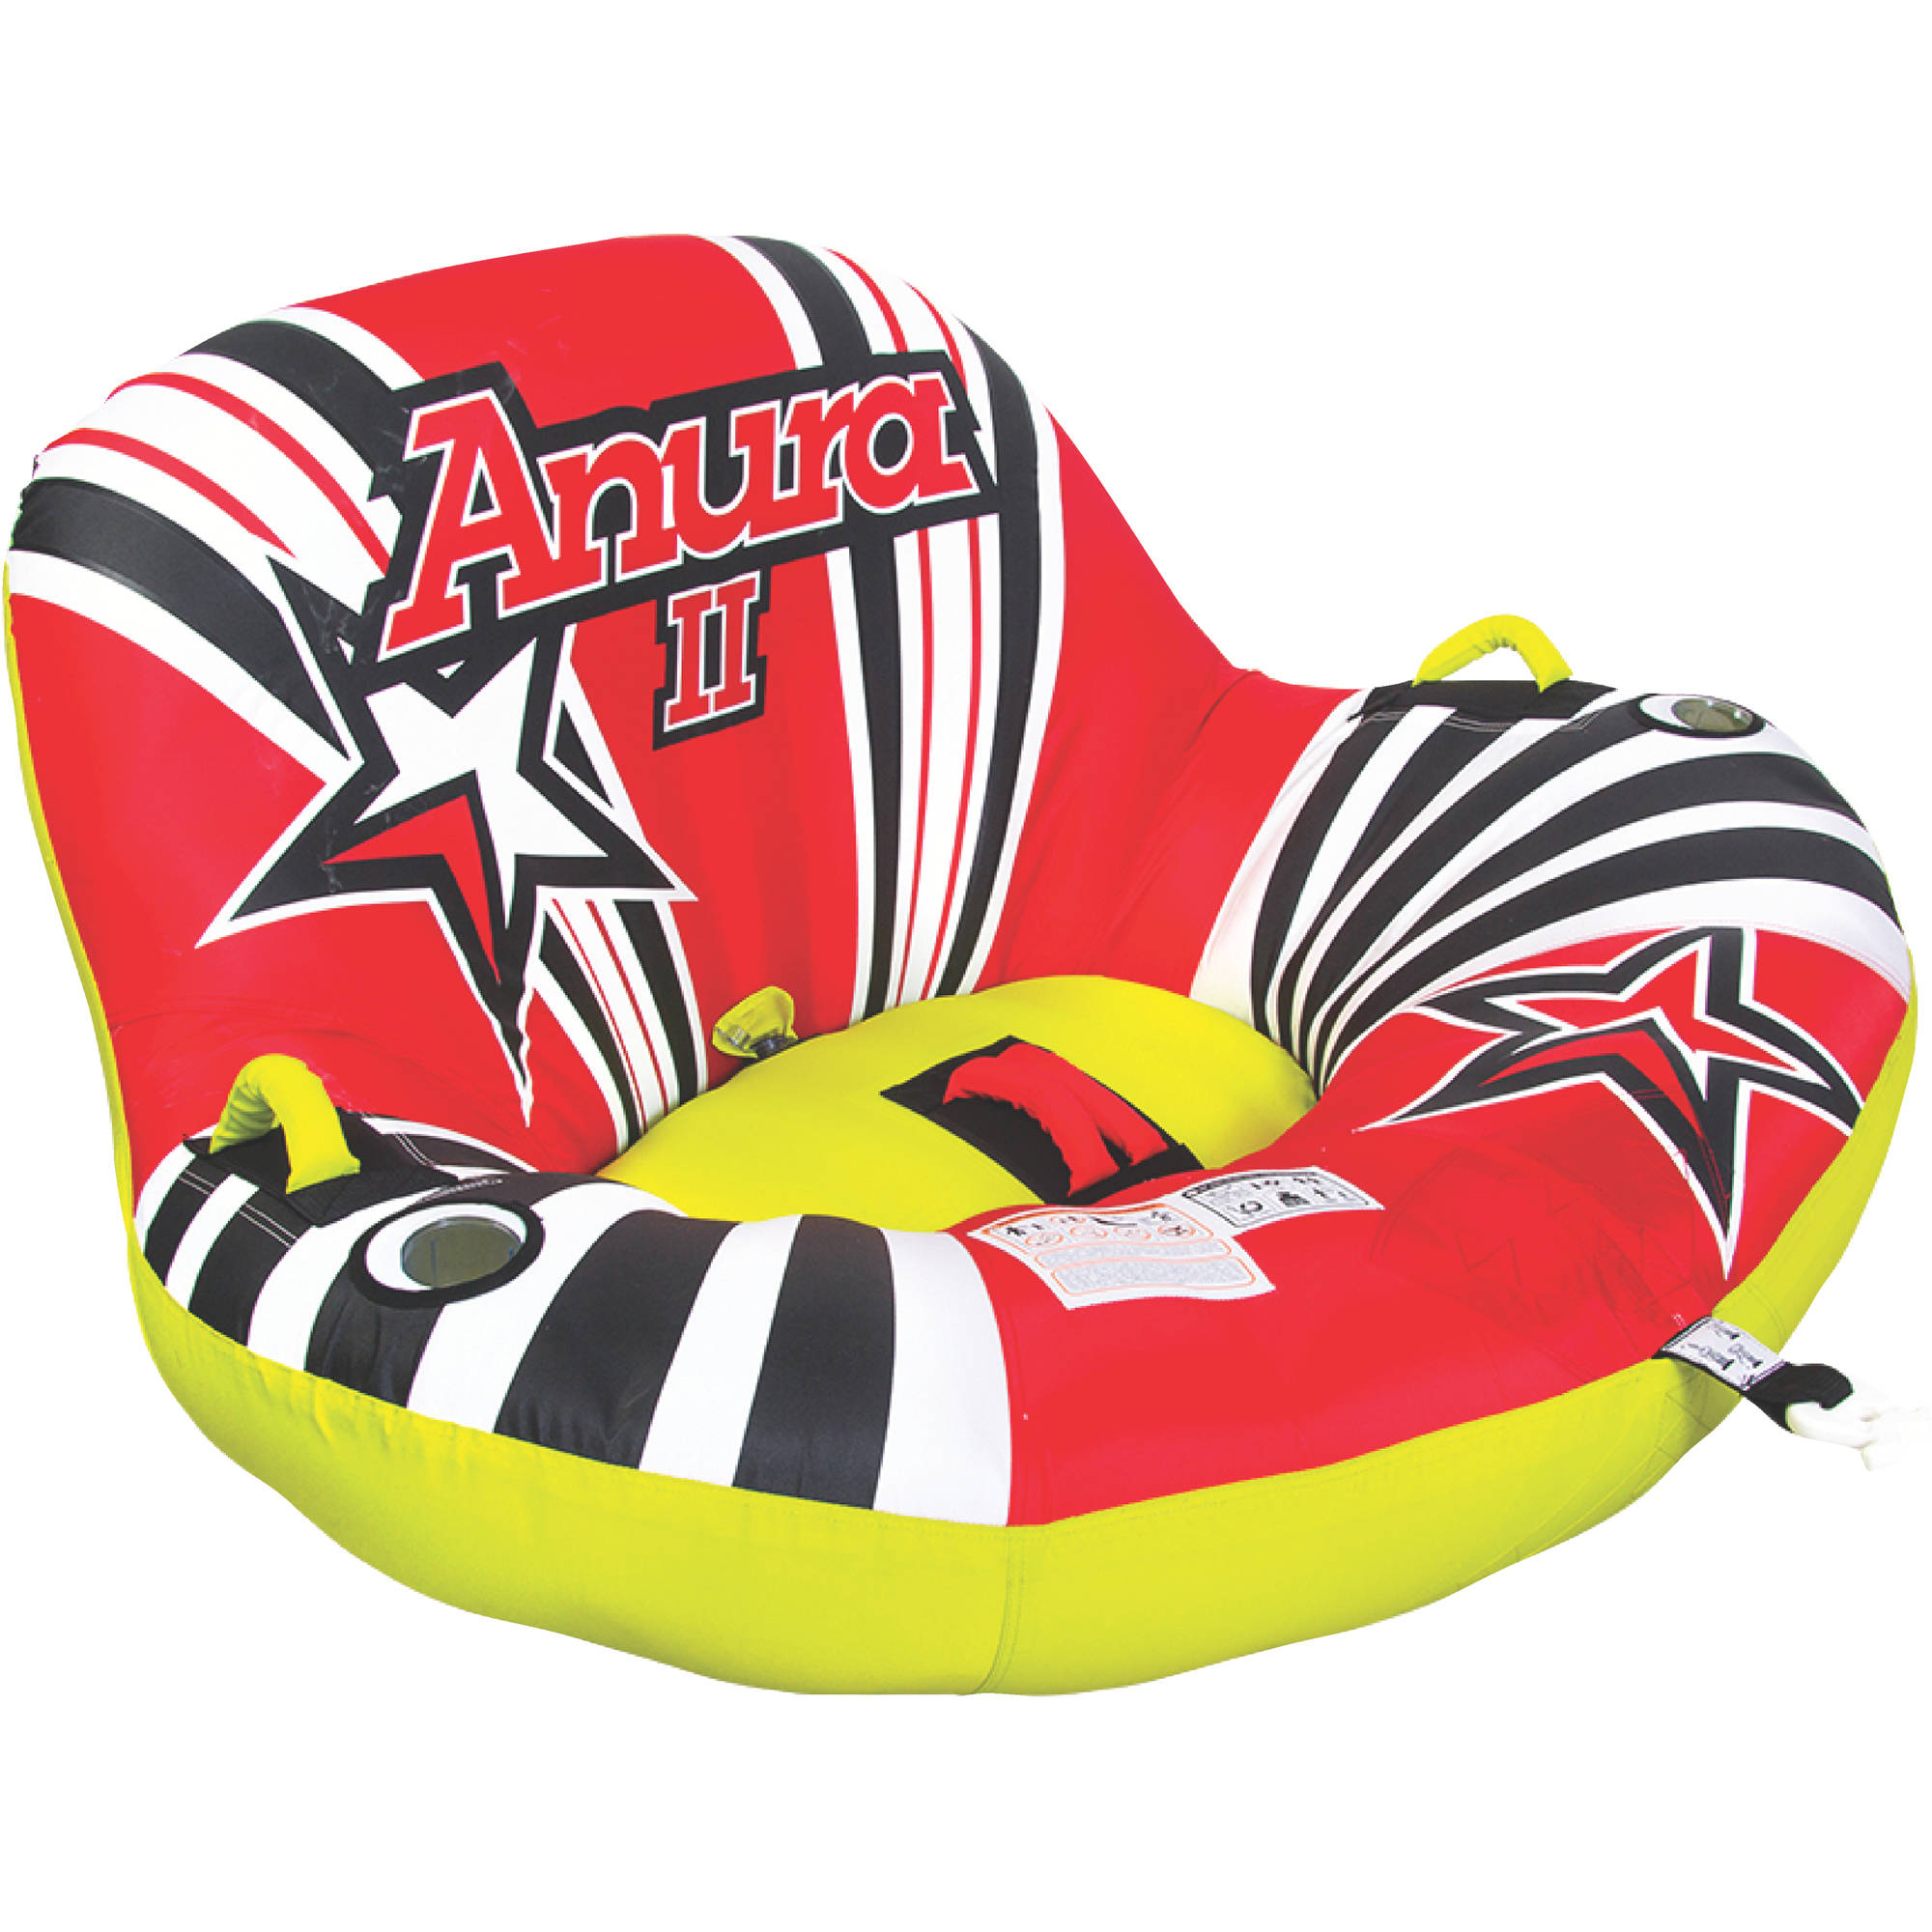 Jobe 230216001 Anura 2 Person Inflatable Towable